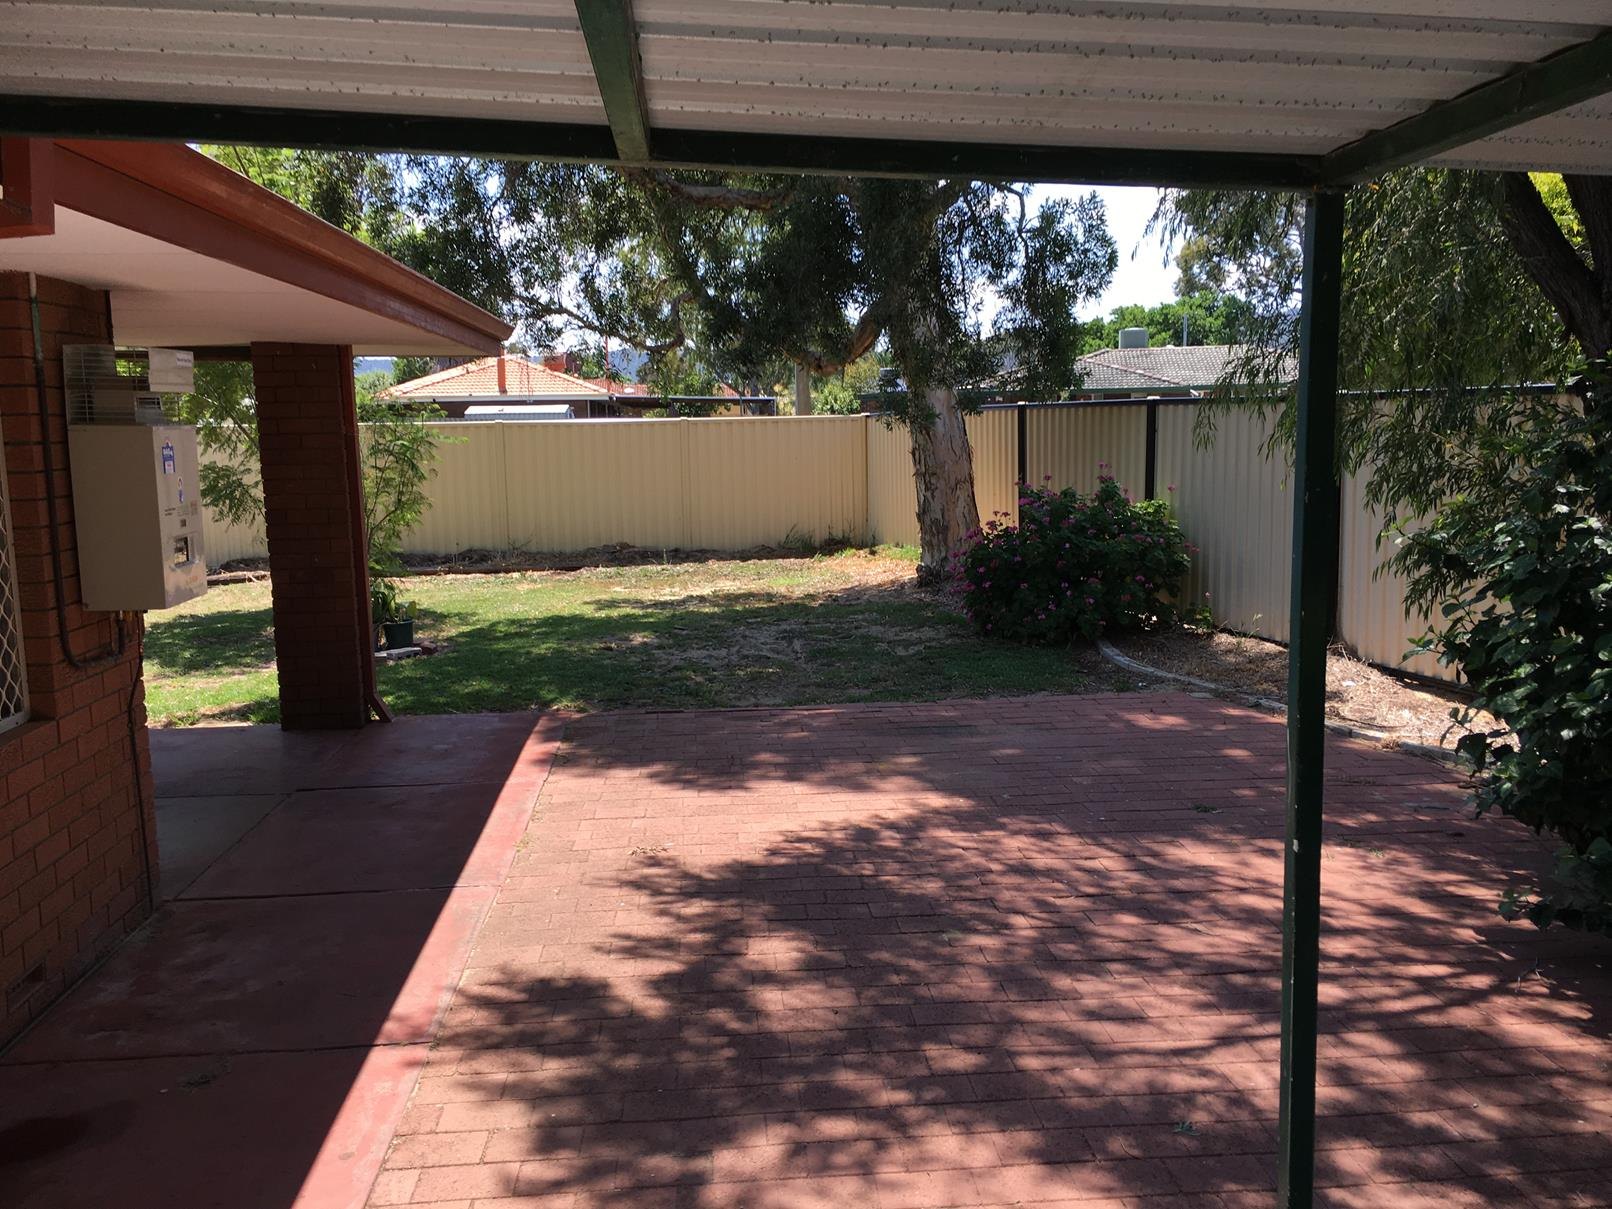 Property for rent in MADDINGTON, 29 Carabeen Road : Attree Real Estate